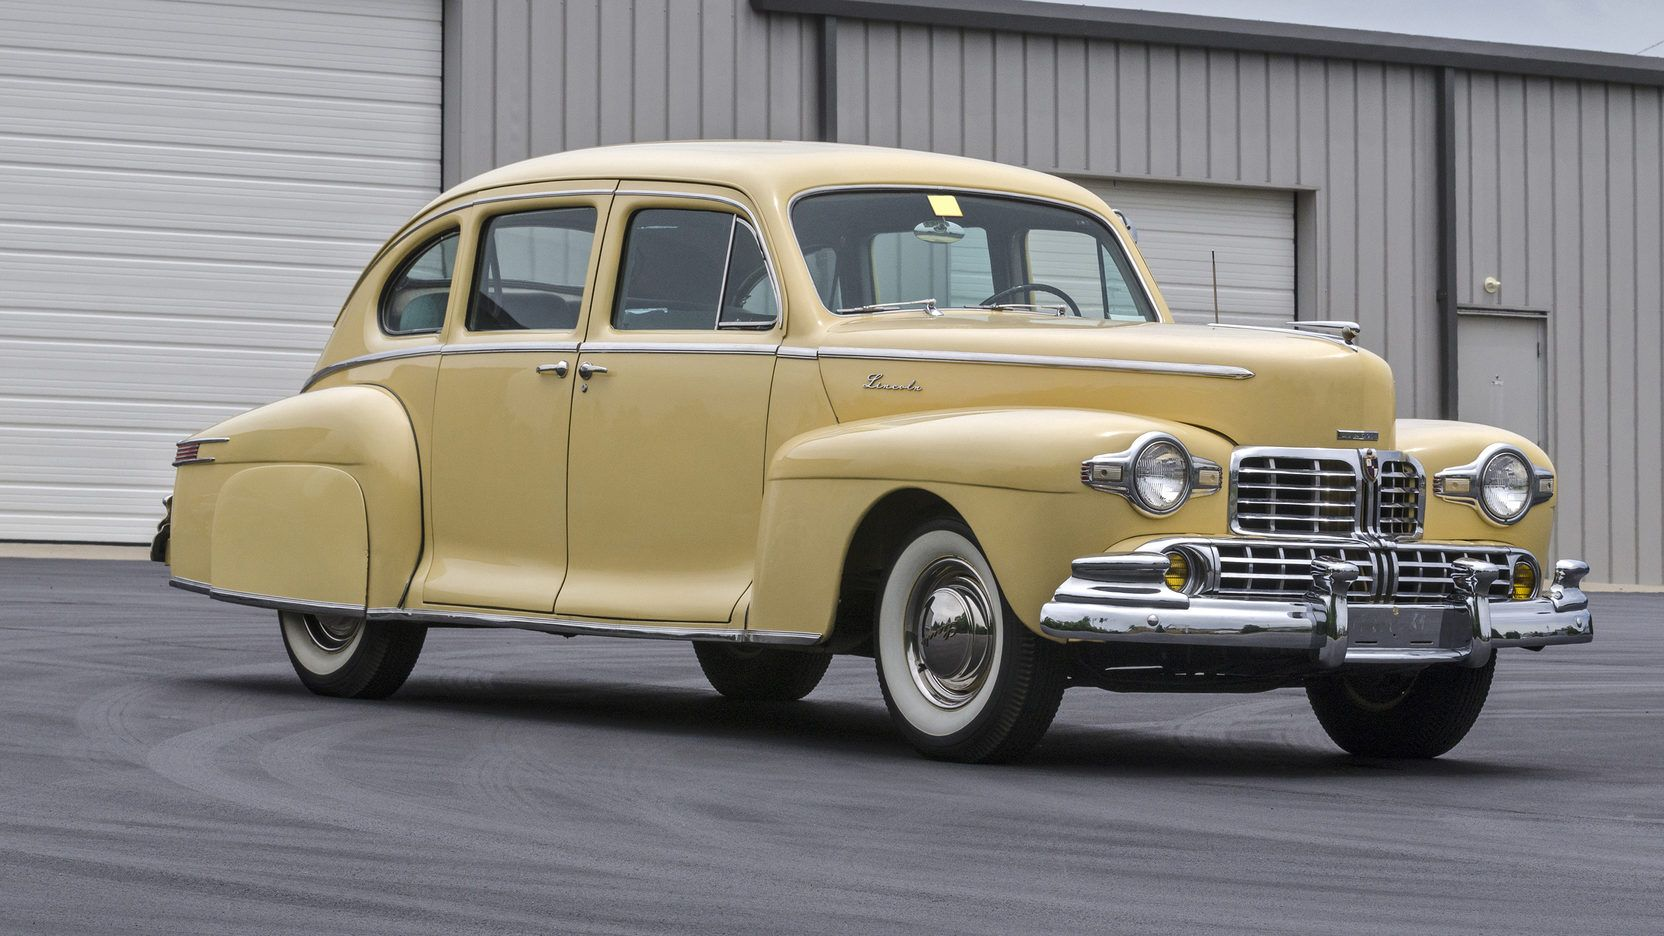 1941 lincoln zephyr 1941 lincoln zephyr 4 door re pin brought to you by agents of carinsurance at houseofinsurance in eugene oregon pinterest cars